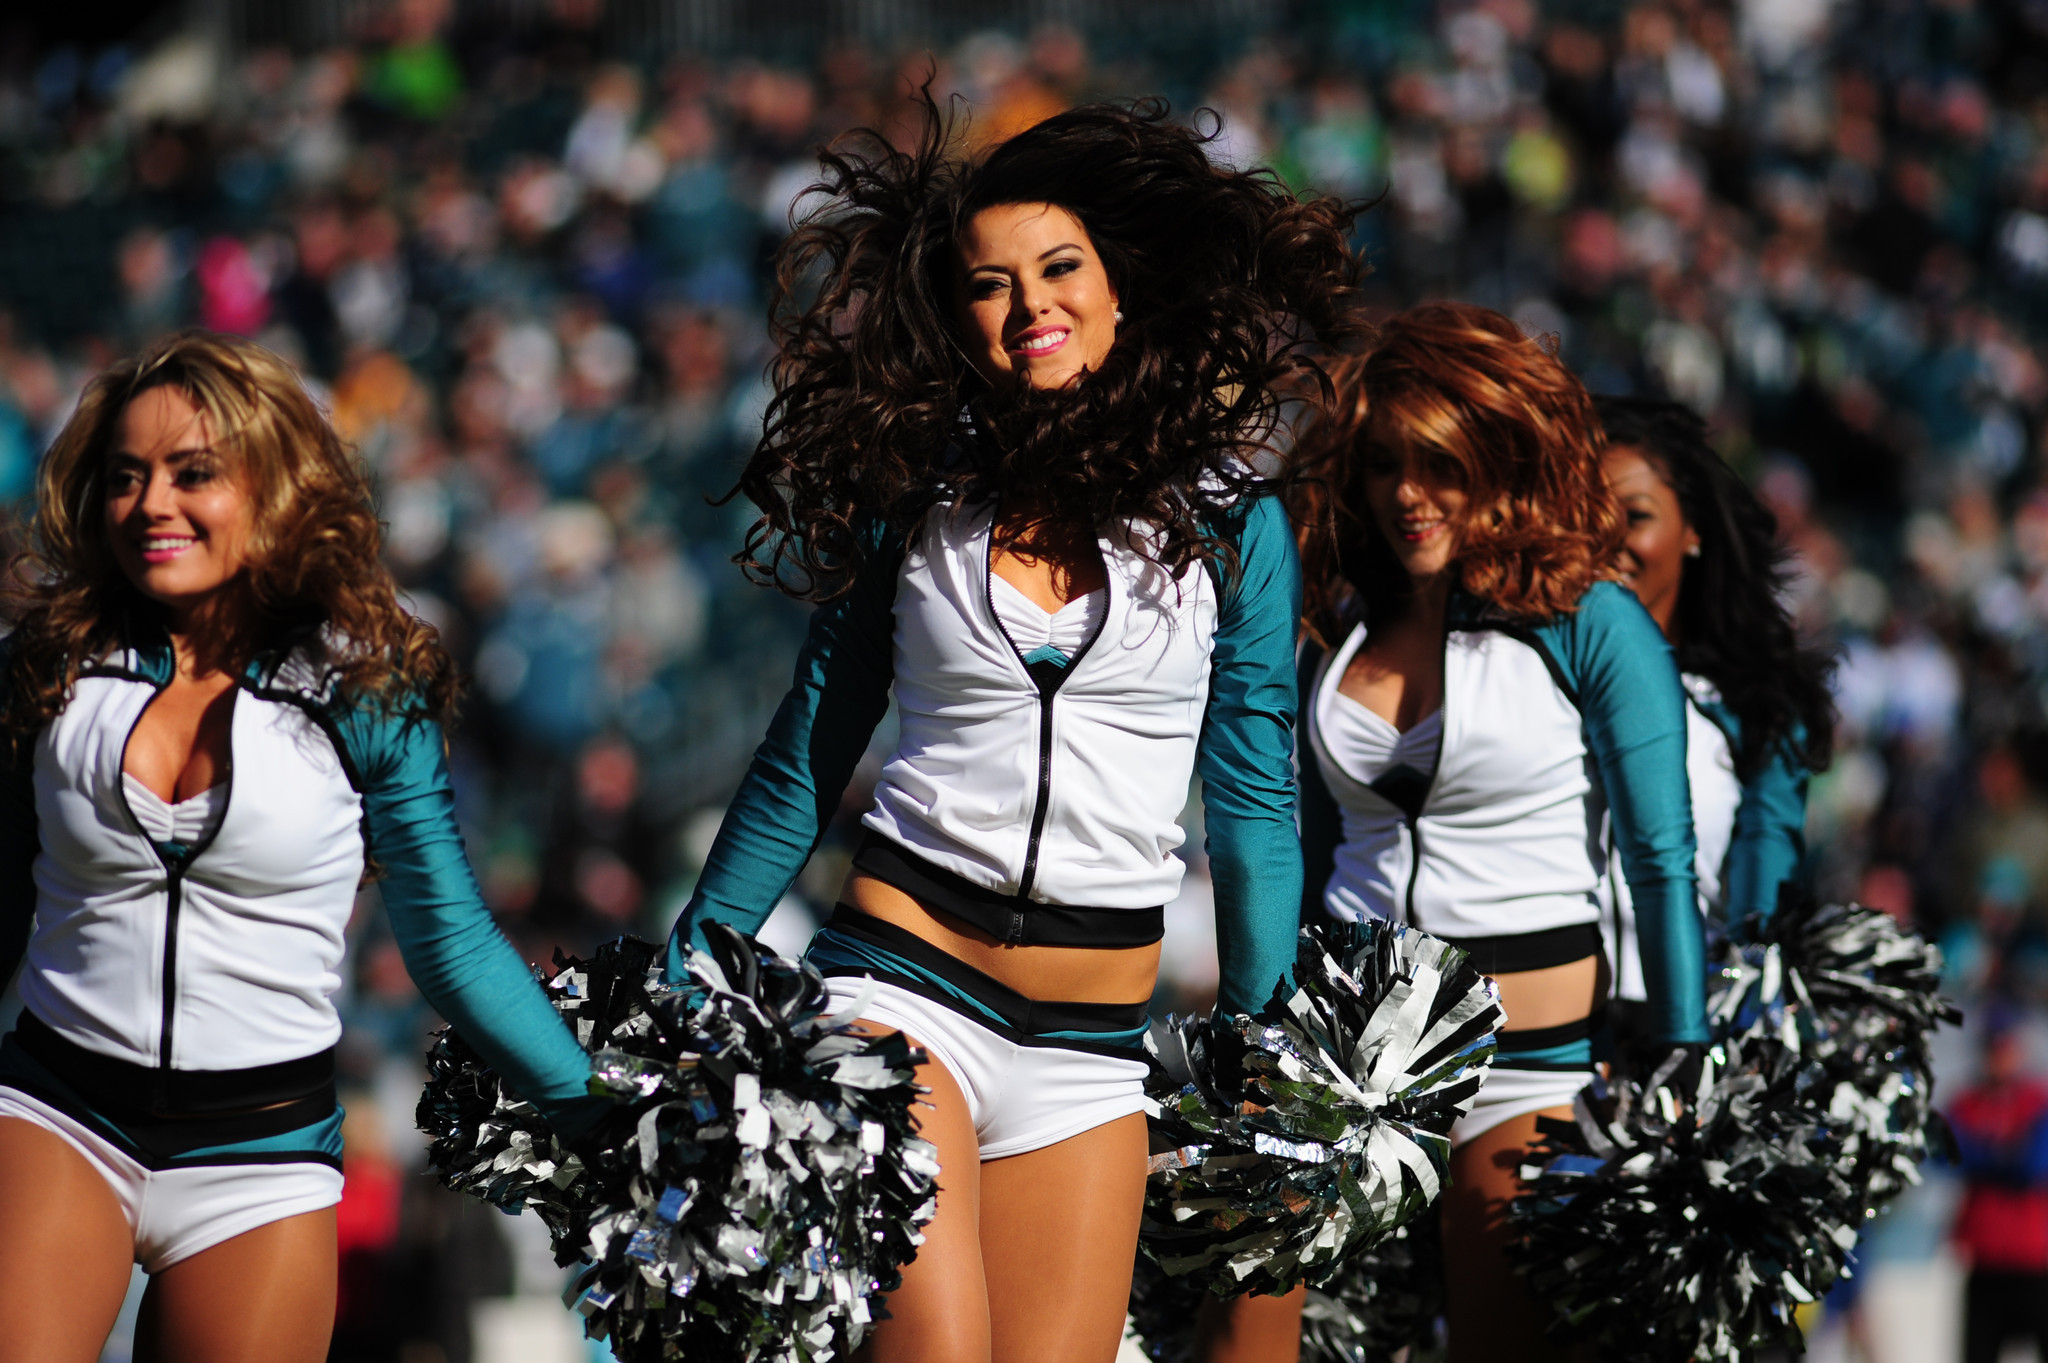 The Philadelphia Eagles Cheerleaders during the 2015